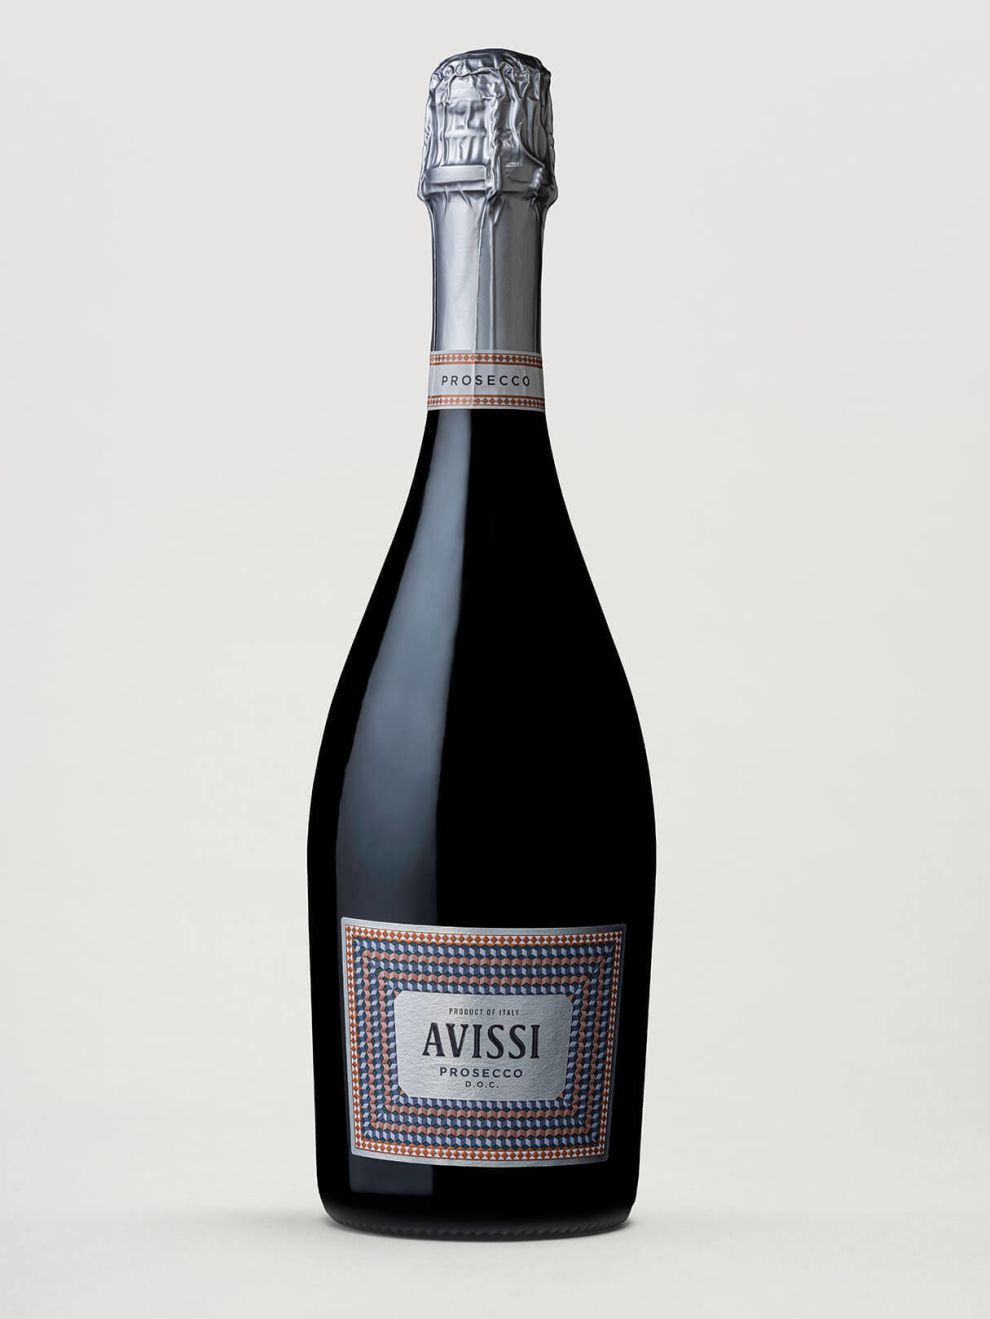 Avissi Prosecco package design by Affinity Creative